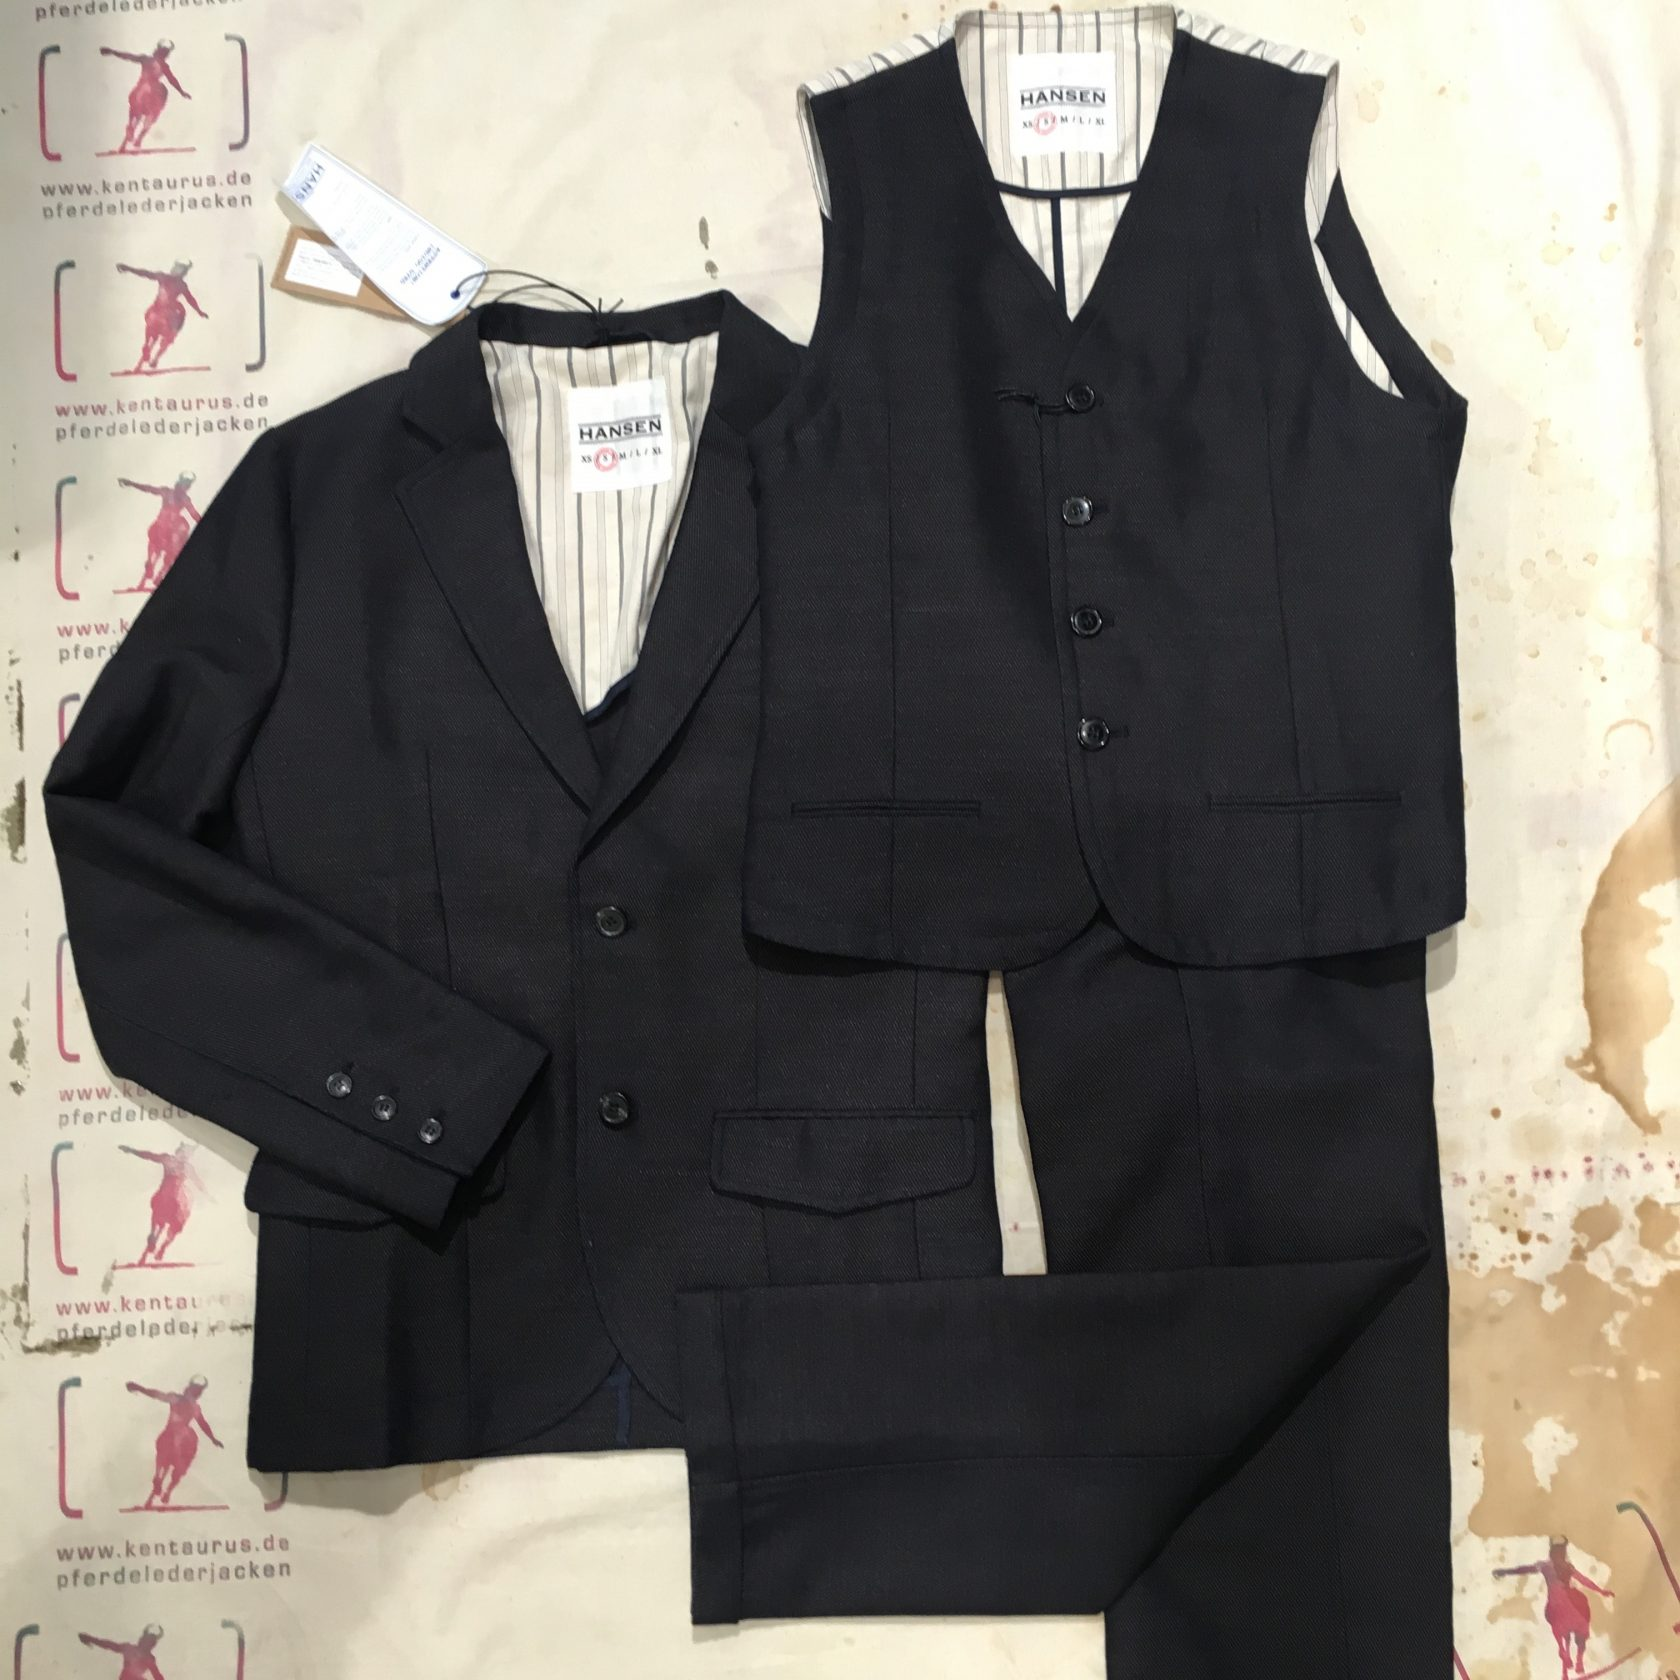 Hansen 3piece wool /cotton suit indigo